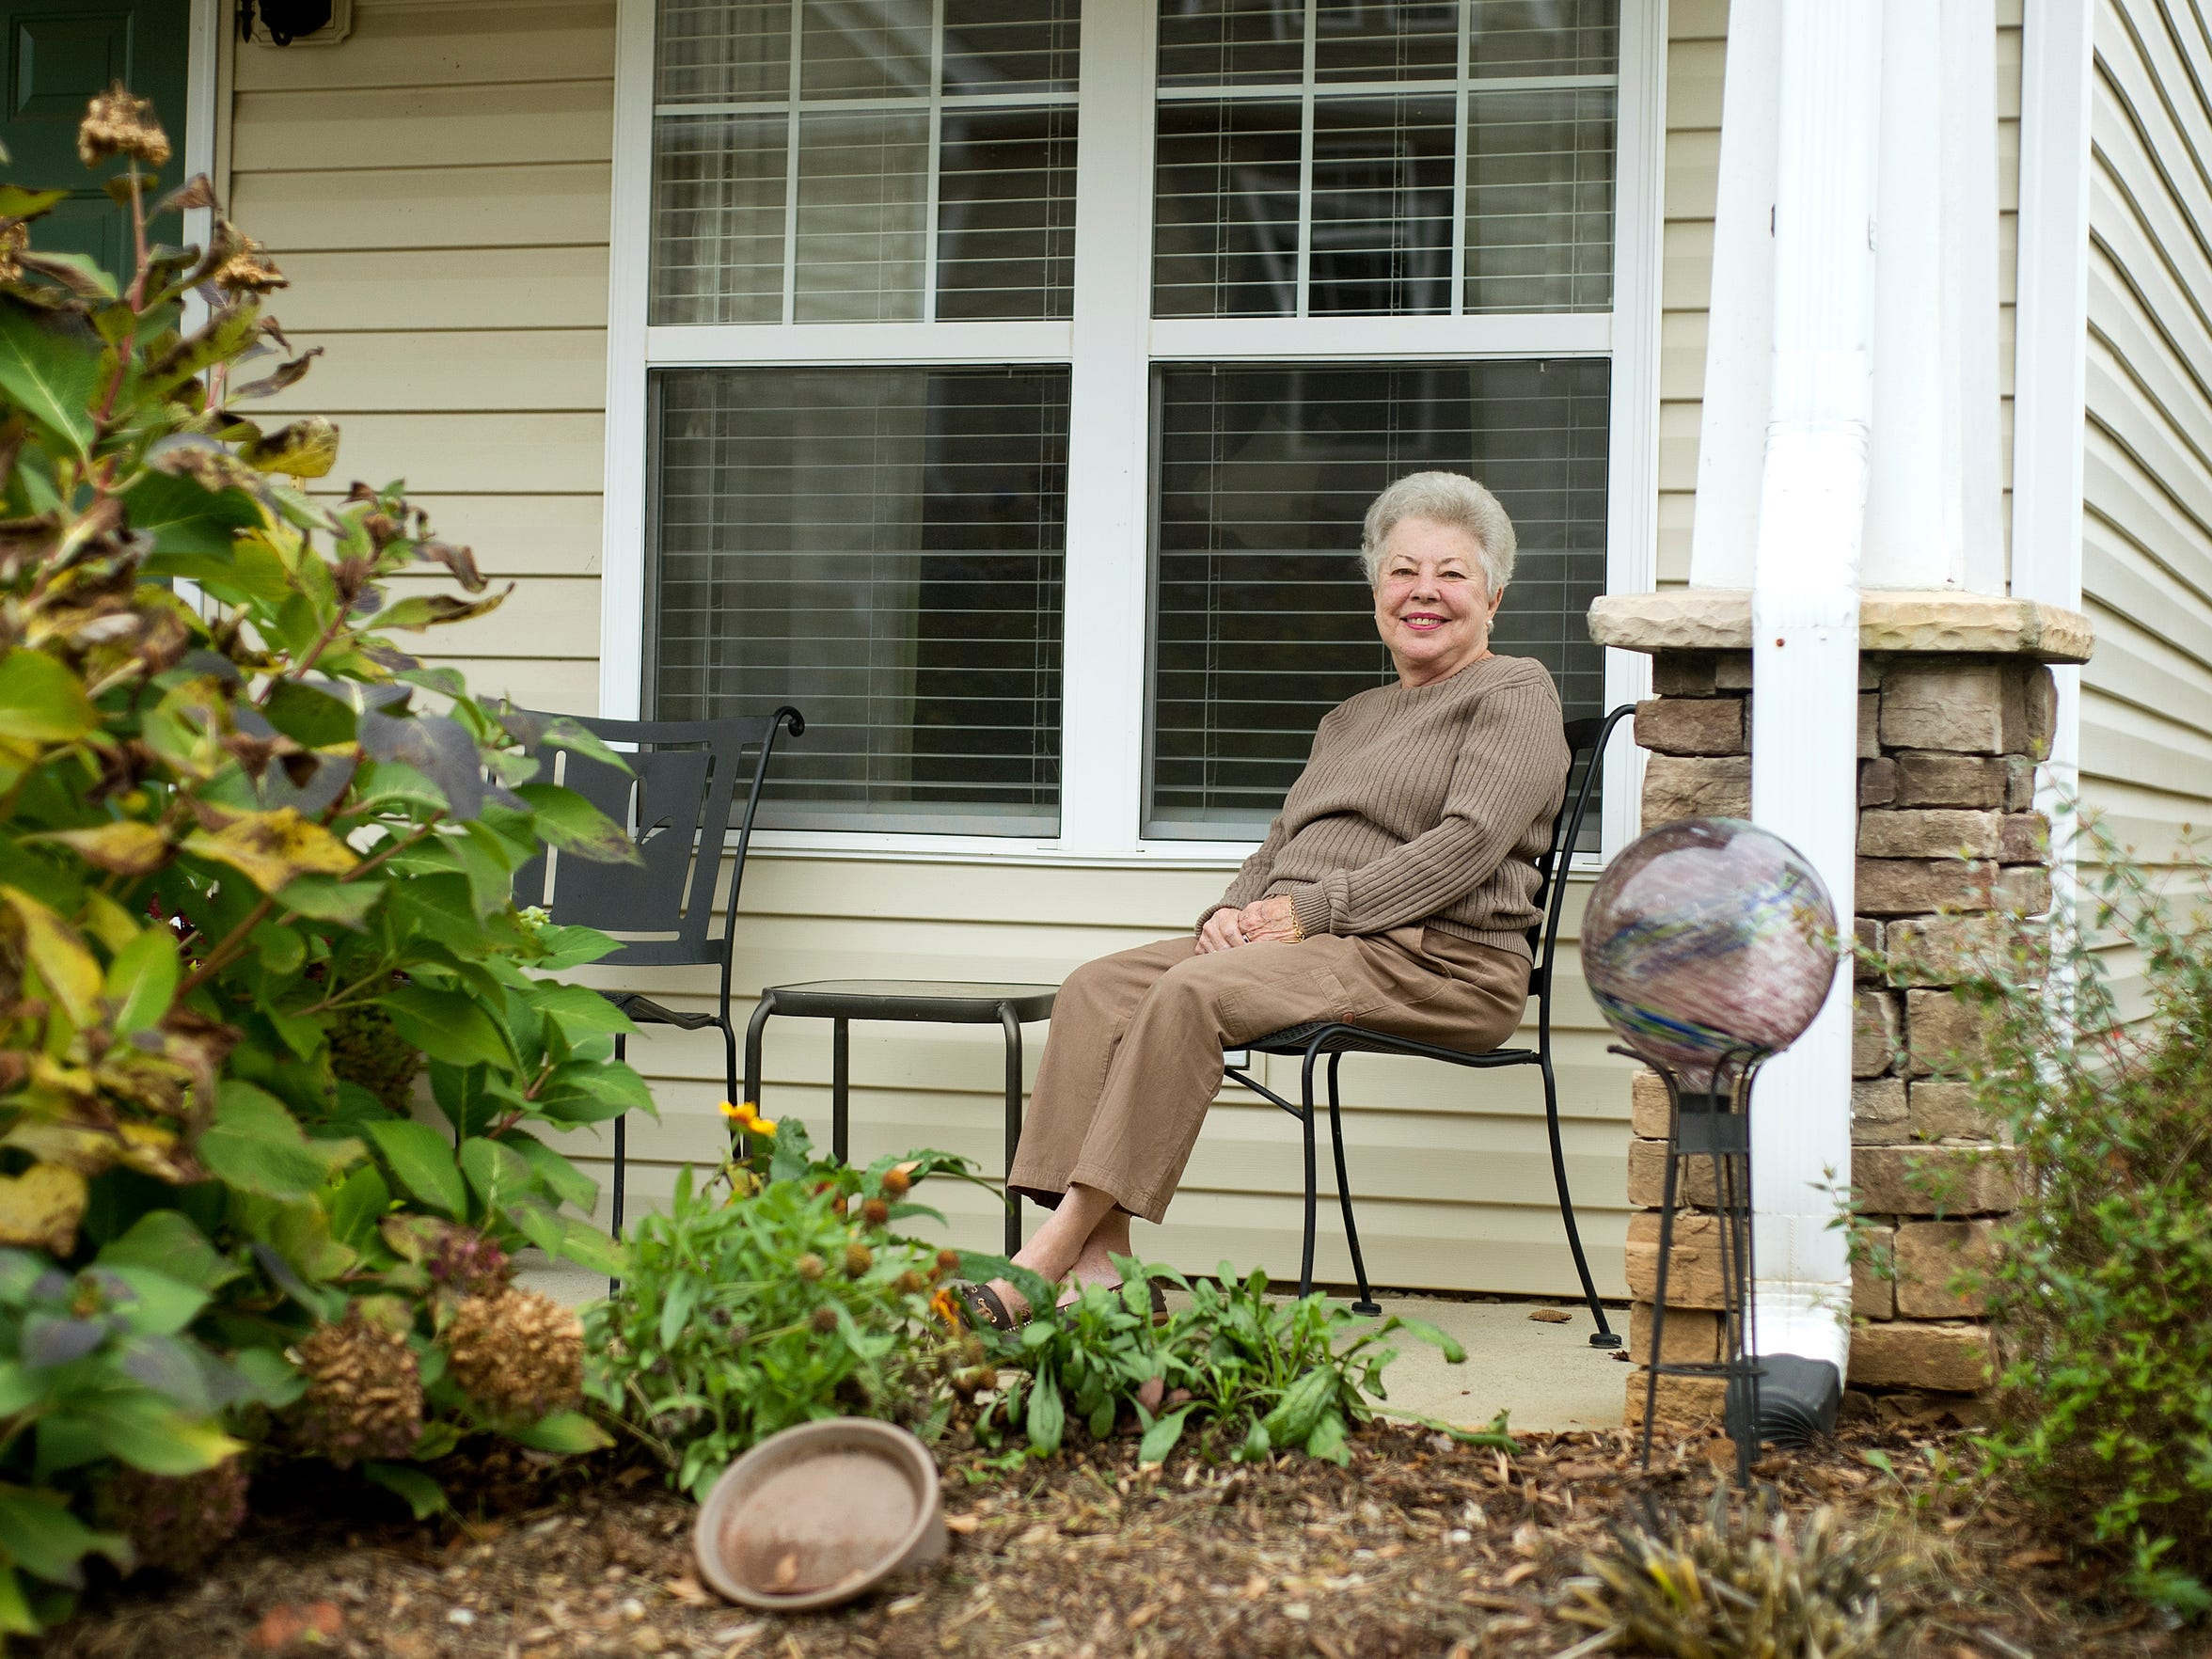 Patty Mewborne Head sits outside of the home she lives